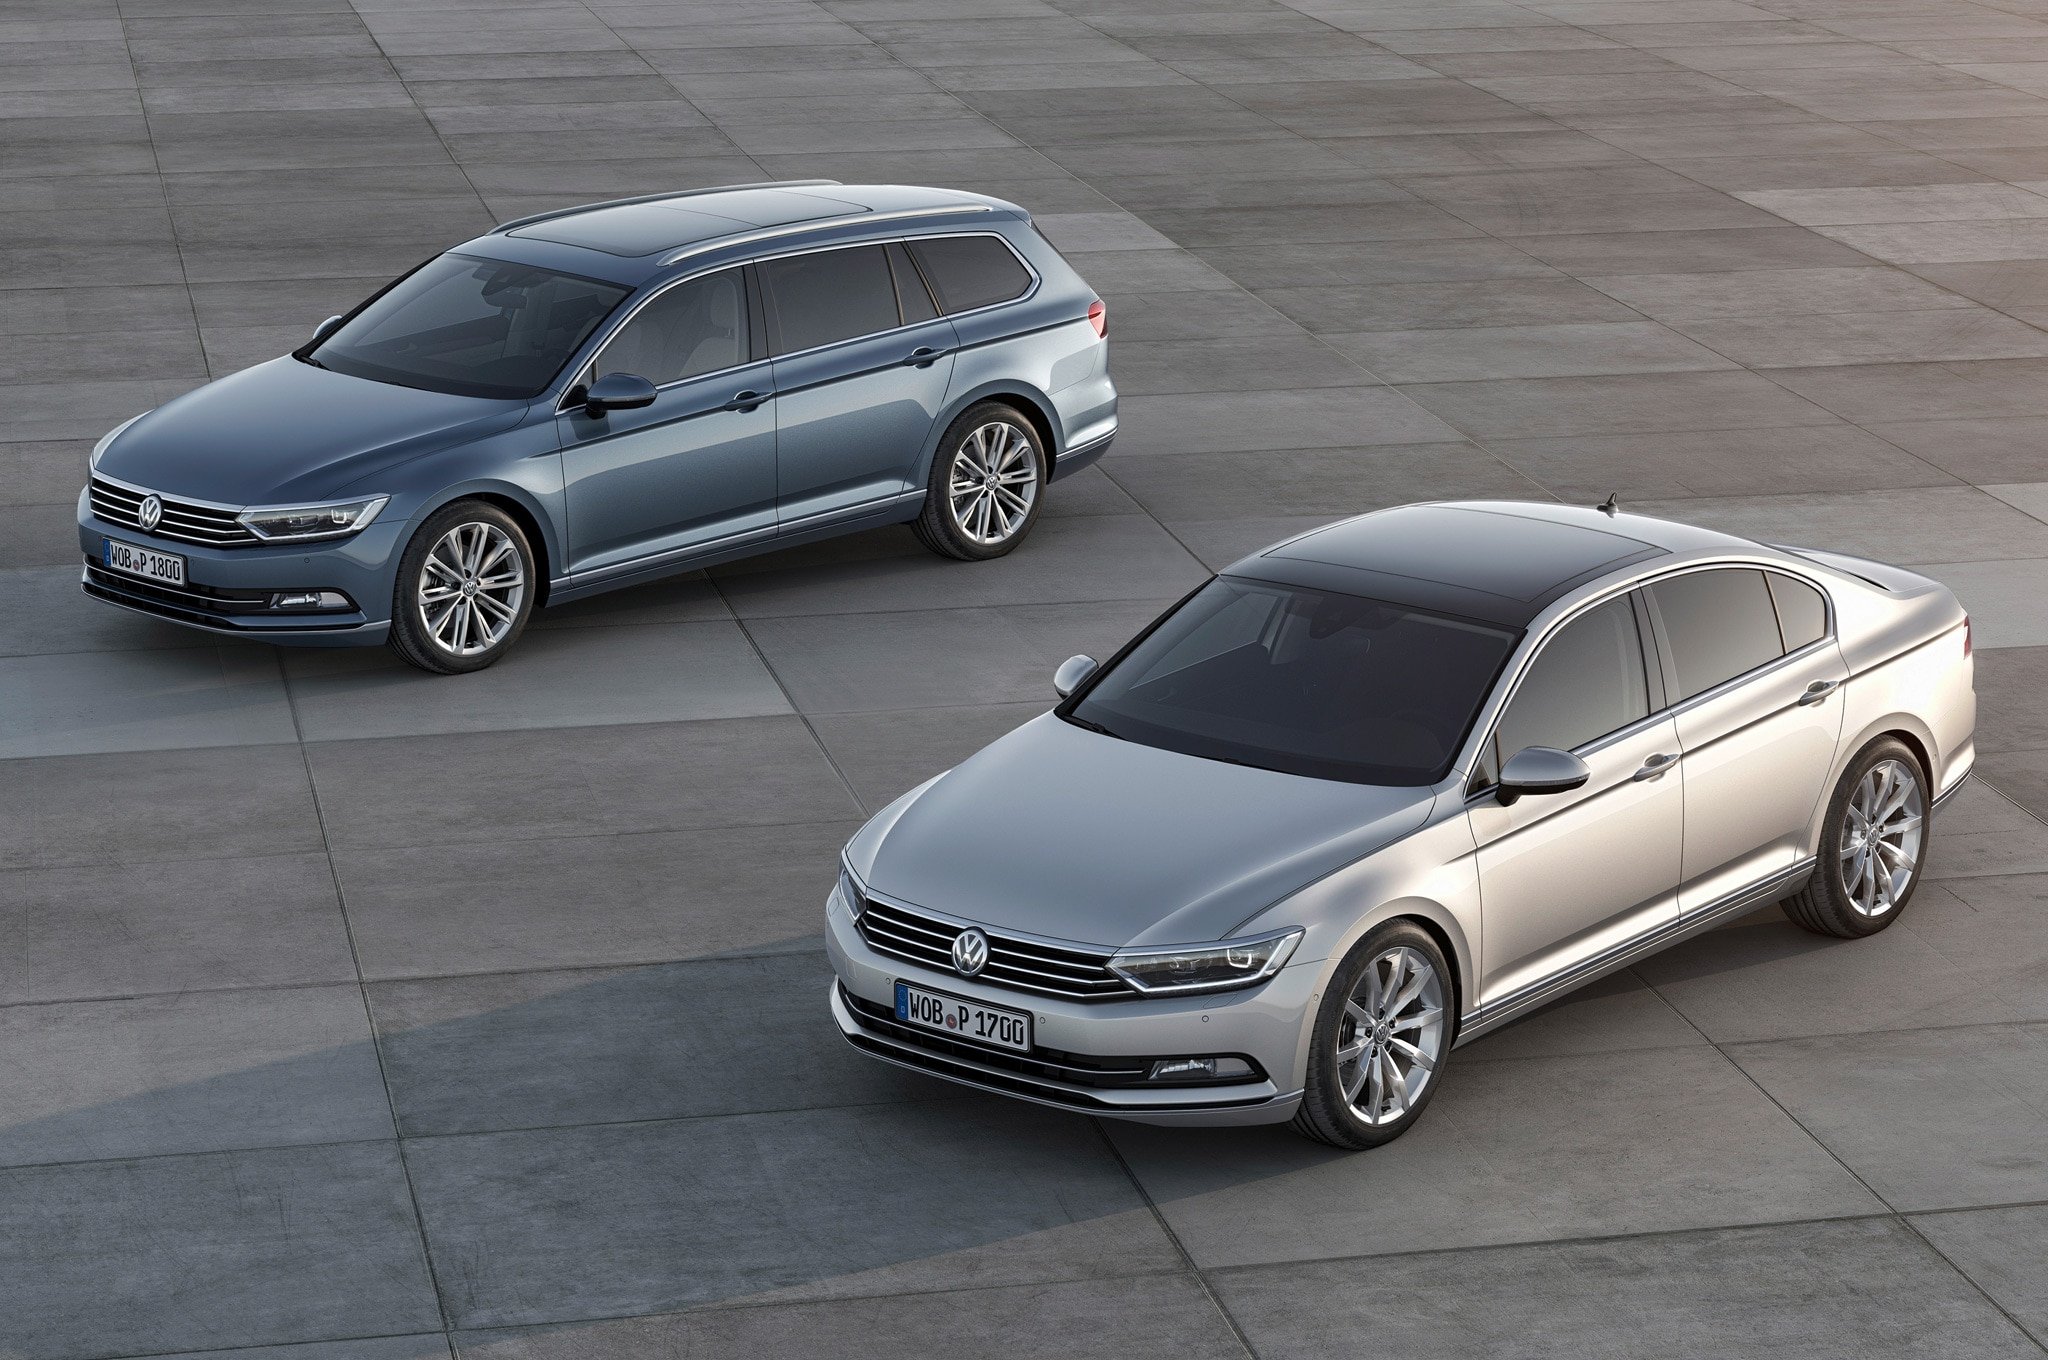 2015 Volkswagen Passat Euro Spec Sedan And Wagon1